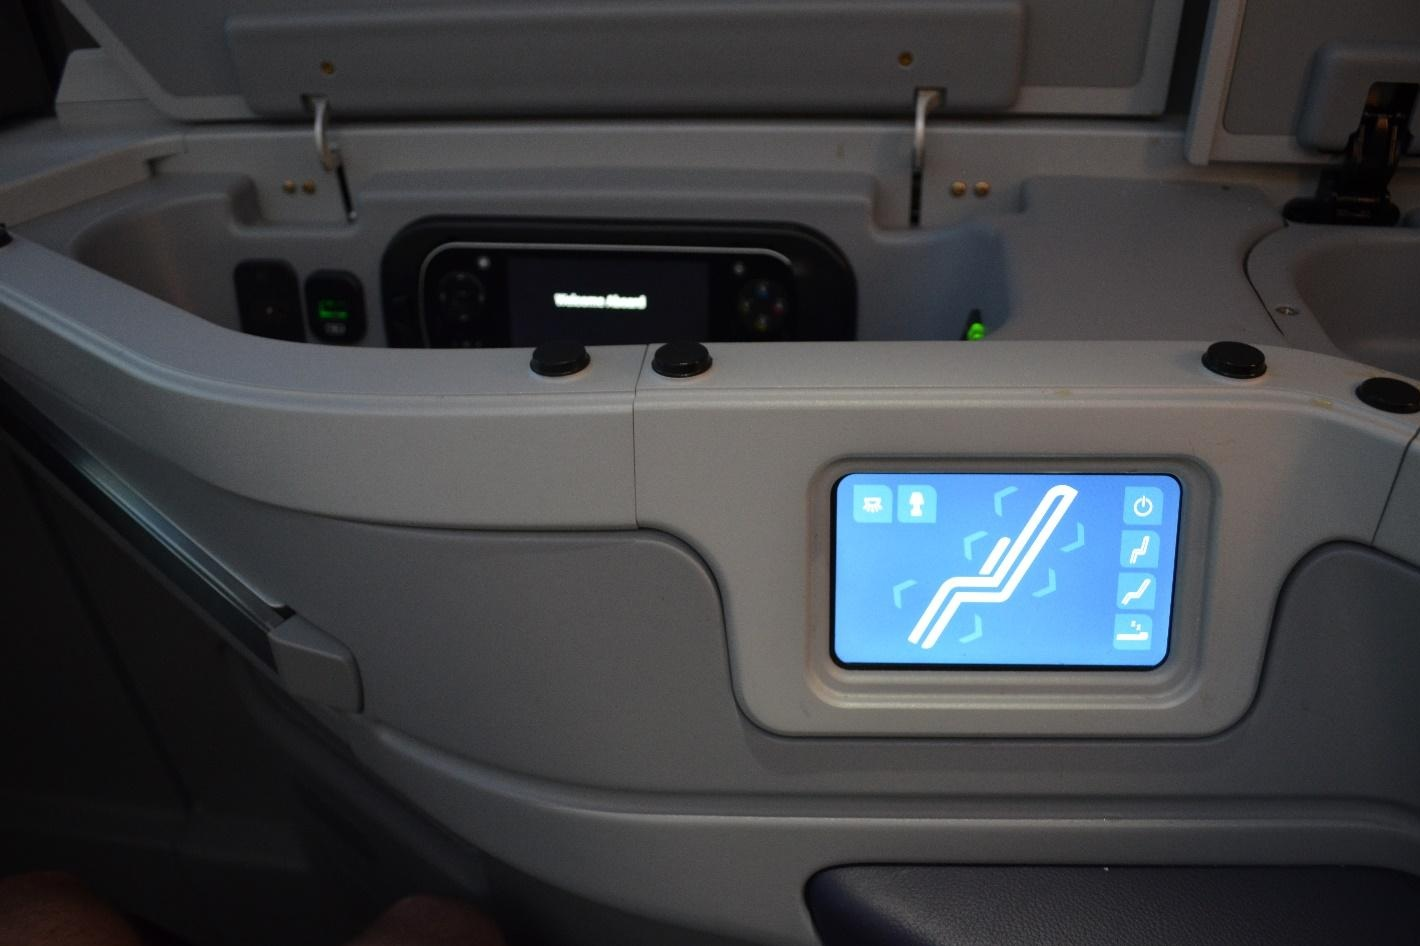 EgyptAir 787 business class – Seat controls